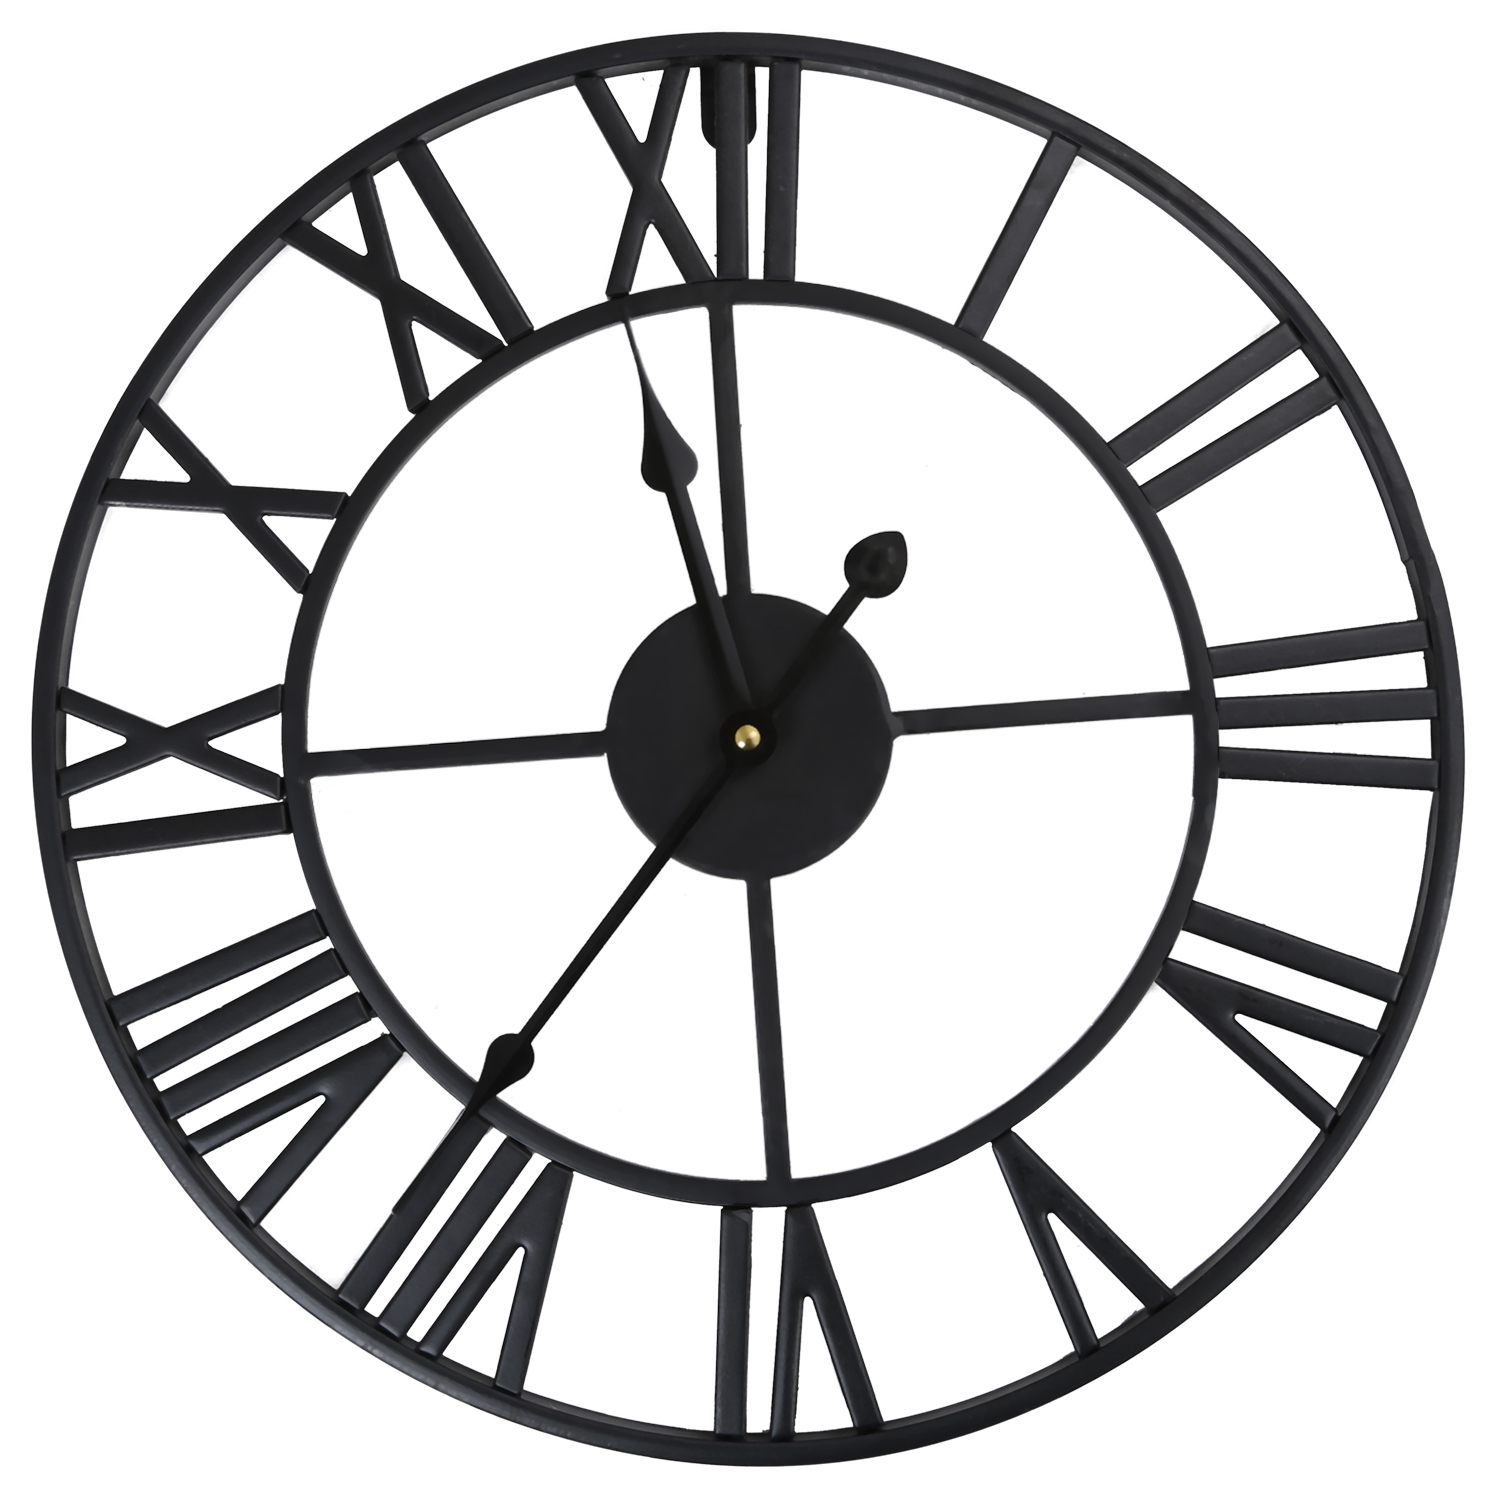 ce88ef238a51 HOT-LARGE OUTDOOR GARDEN WALL CLOCK BIG ROMAN NUMERALS GIANT OPEN ...